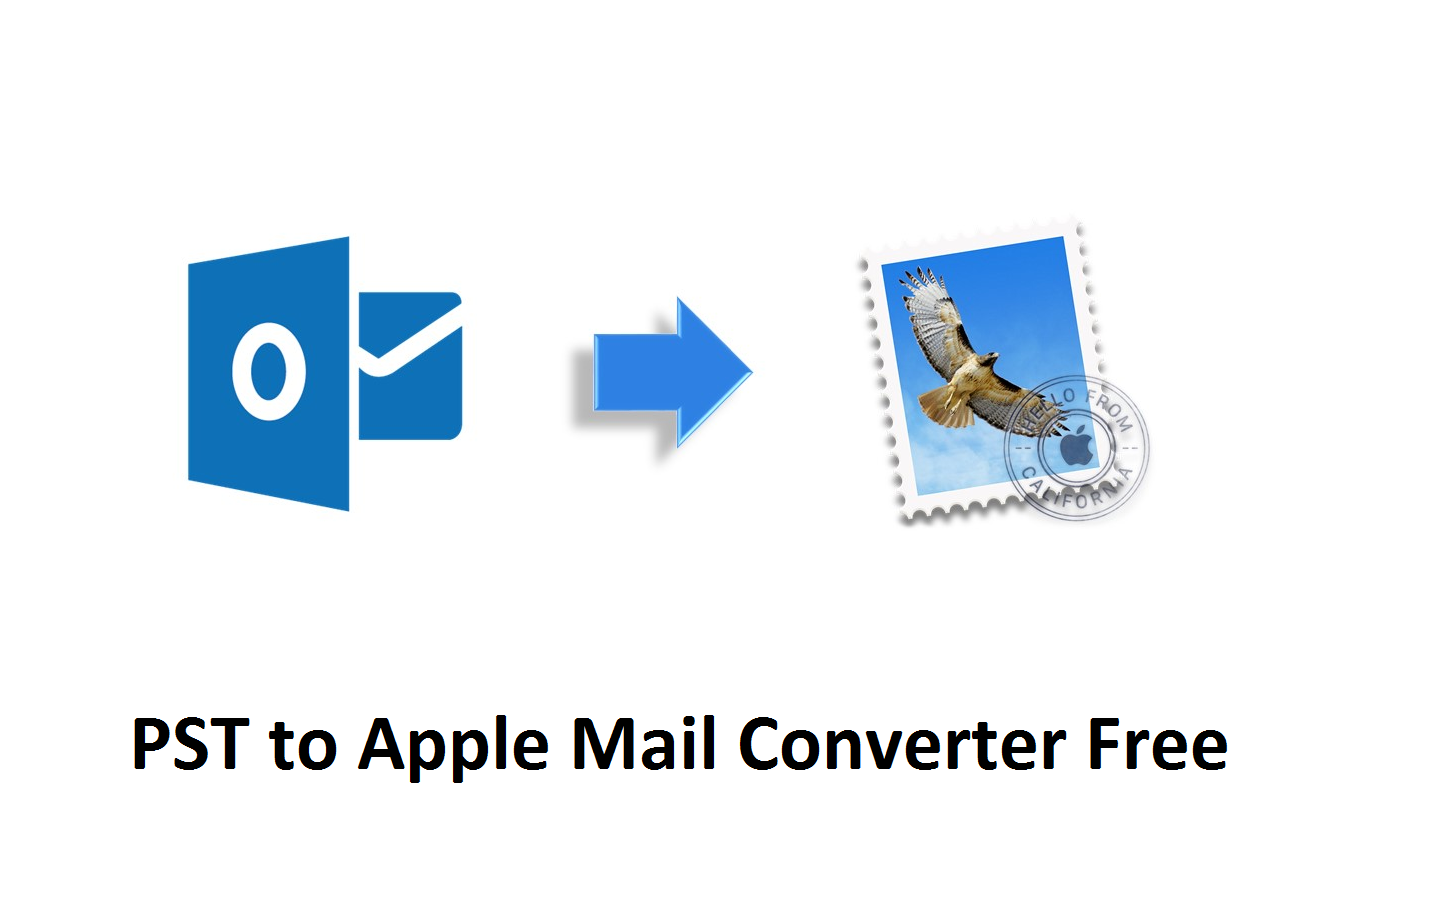 PST to Apple Mail Converter Free